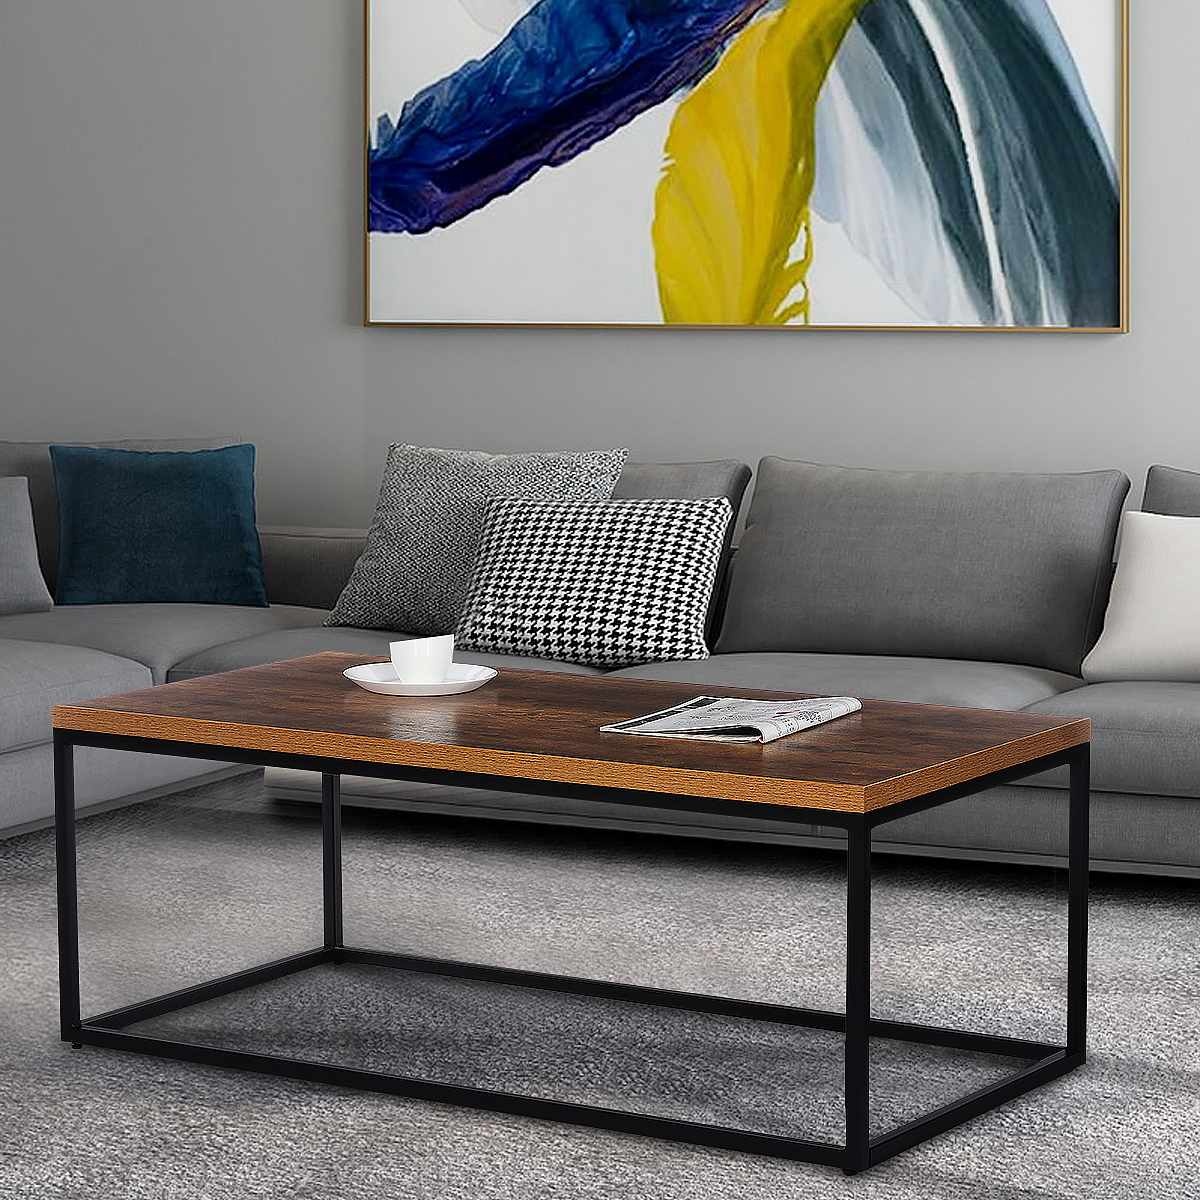 Modern Industrial Coffee Table Wood and Metal Frame Living Room Tea Table Laptop Desk